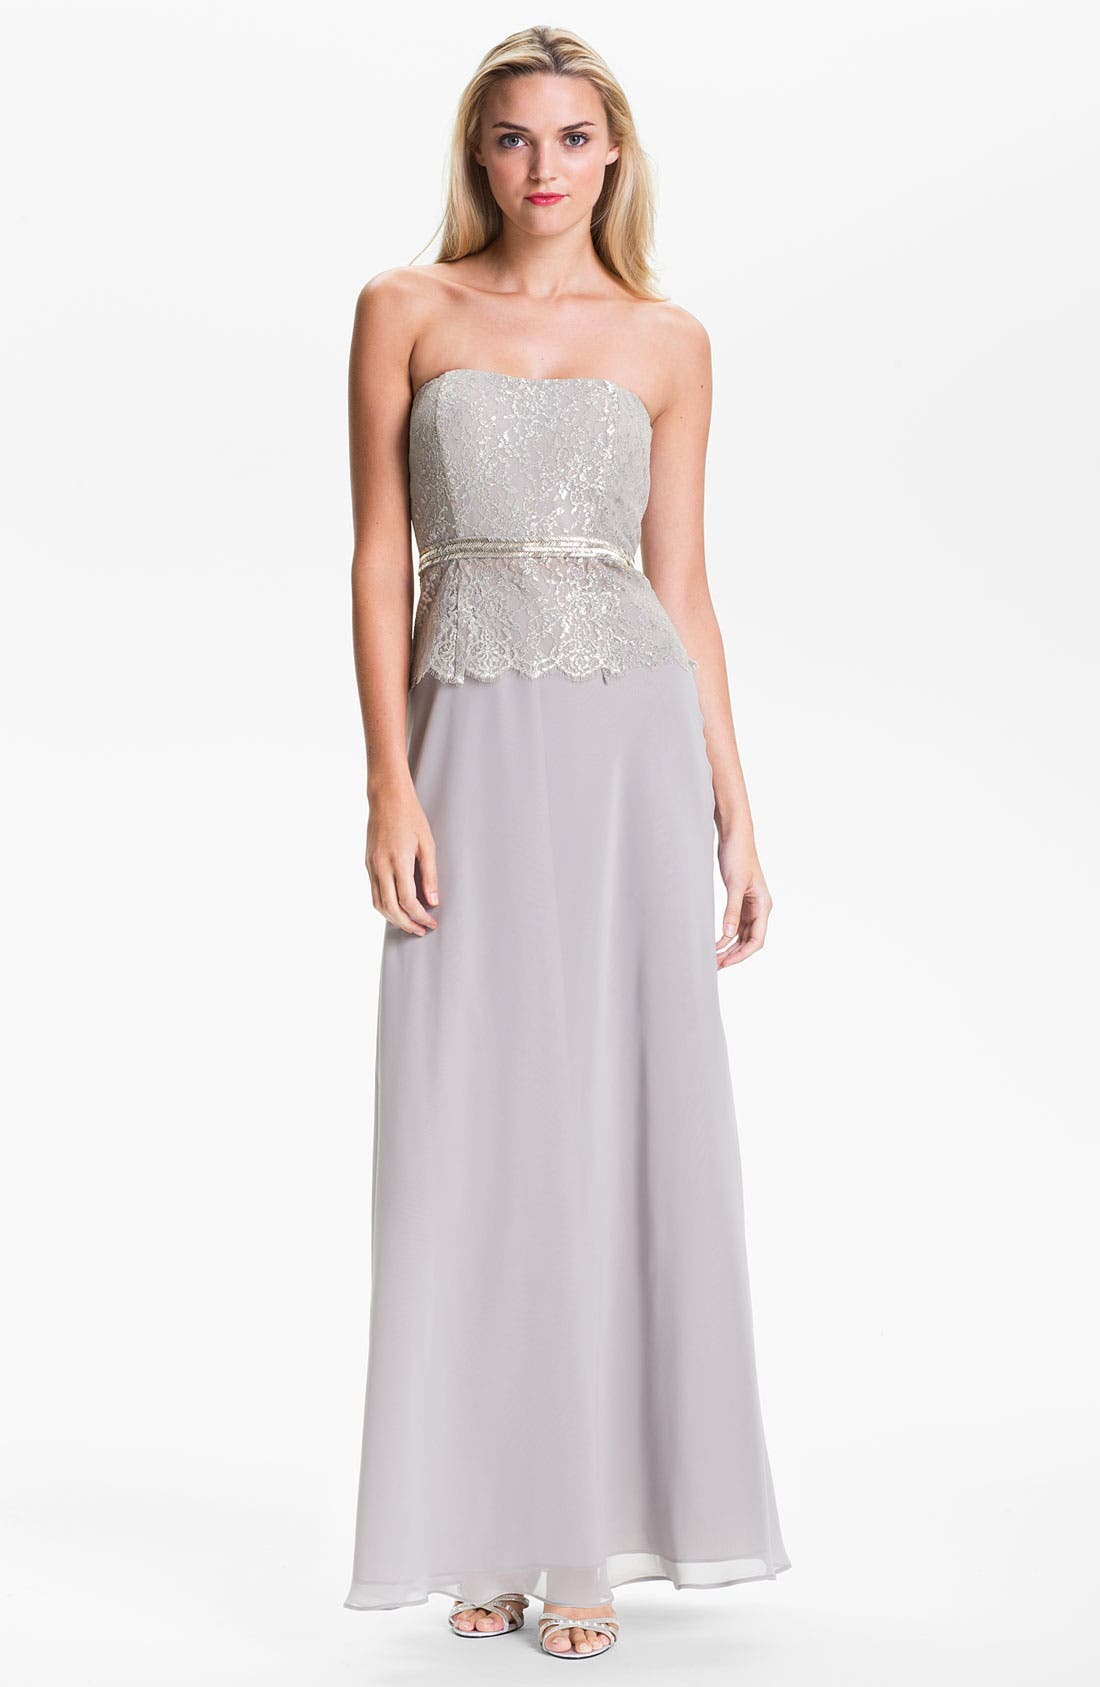 Alternate Image 1 Selected - Calvin Klein Strapless Metallic Lace & Chiffon Gown